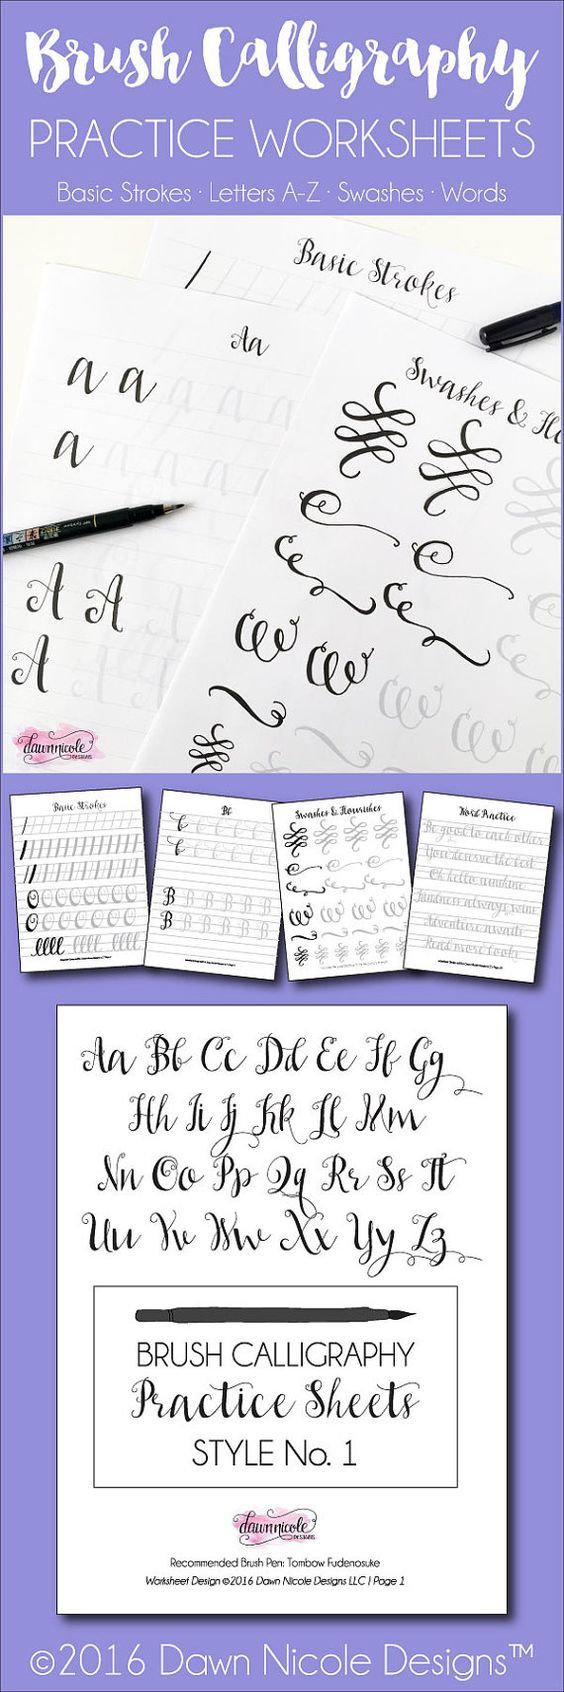 Brush Calligraphy Practice Worksheets: Style 1 by ByDawnNicole